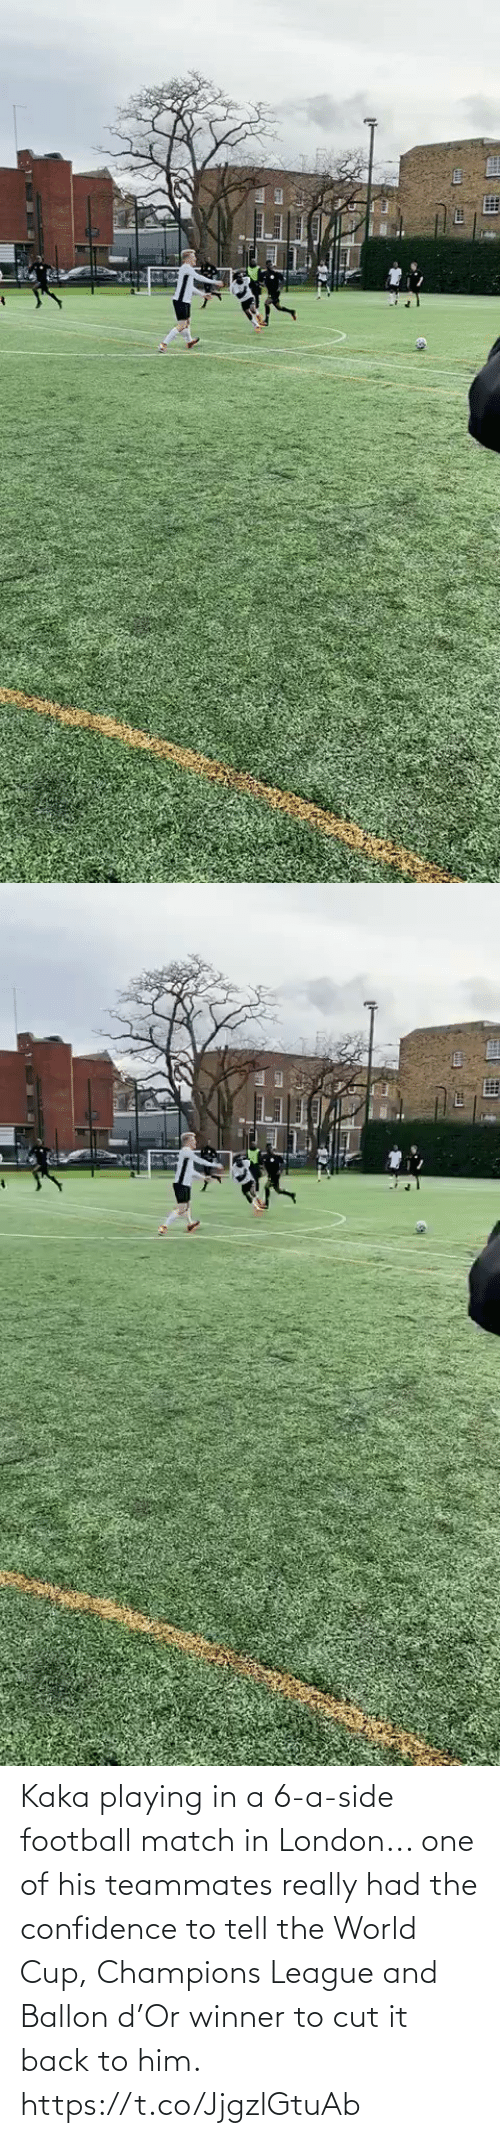 Match: Kaka playing in a 6-a-side football match in London... one of his teammates really had the confidence to tell the World Cup, Champions League and Ballon d'Or winner to cut it back to him.   https://t.co/JjgzlGtuAb